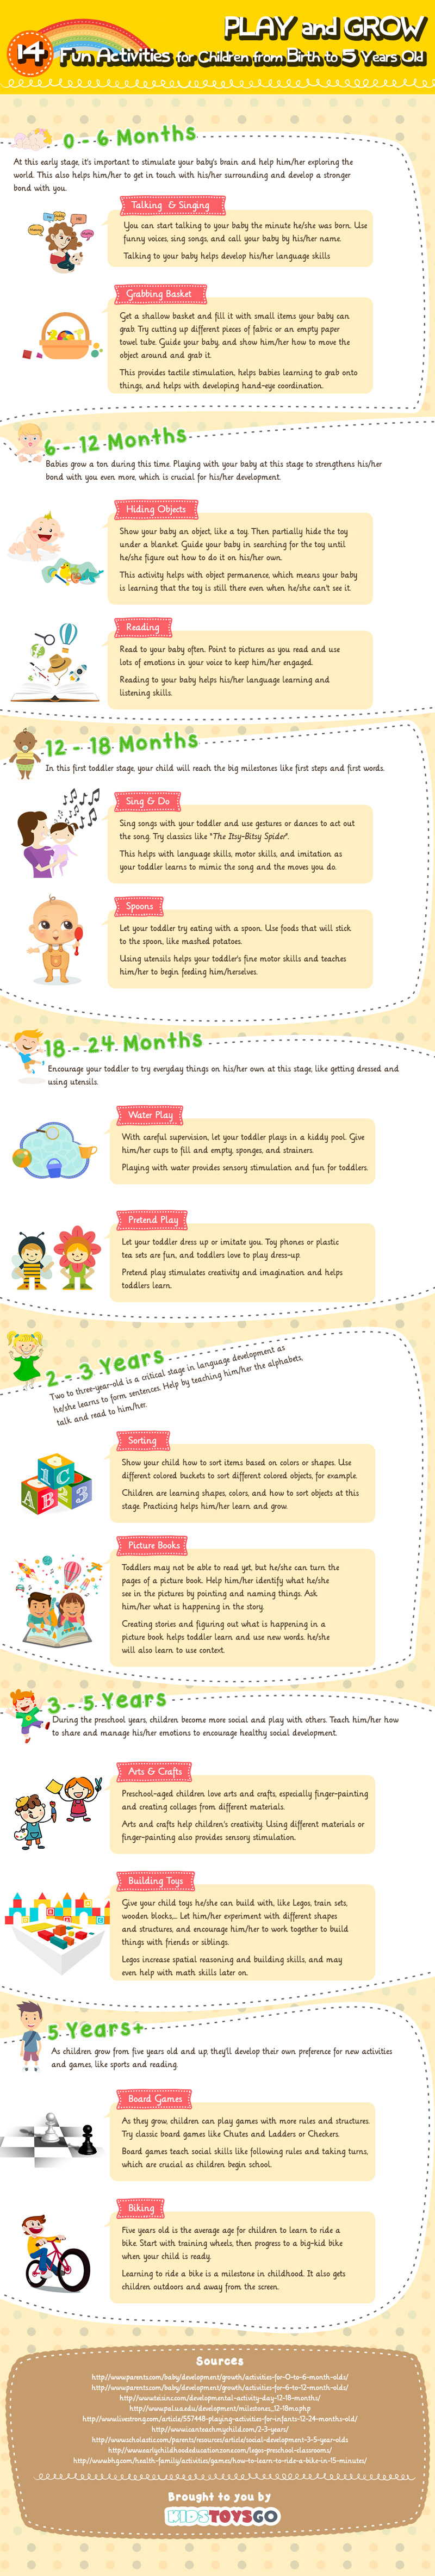 Fun Activities for Children from Birth to 5 Years Old